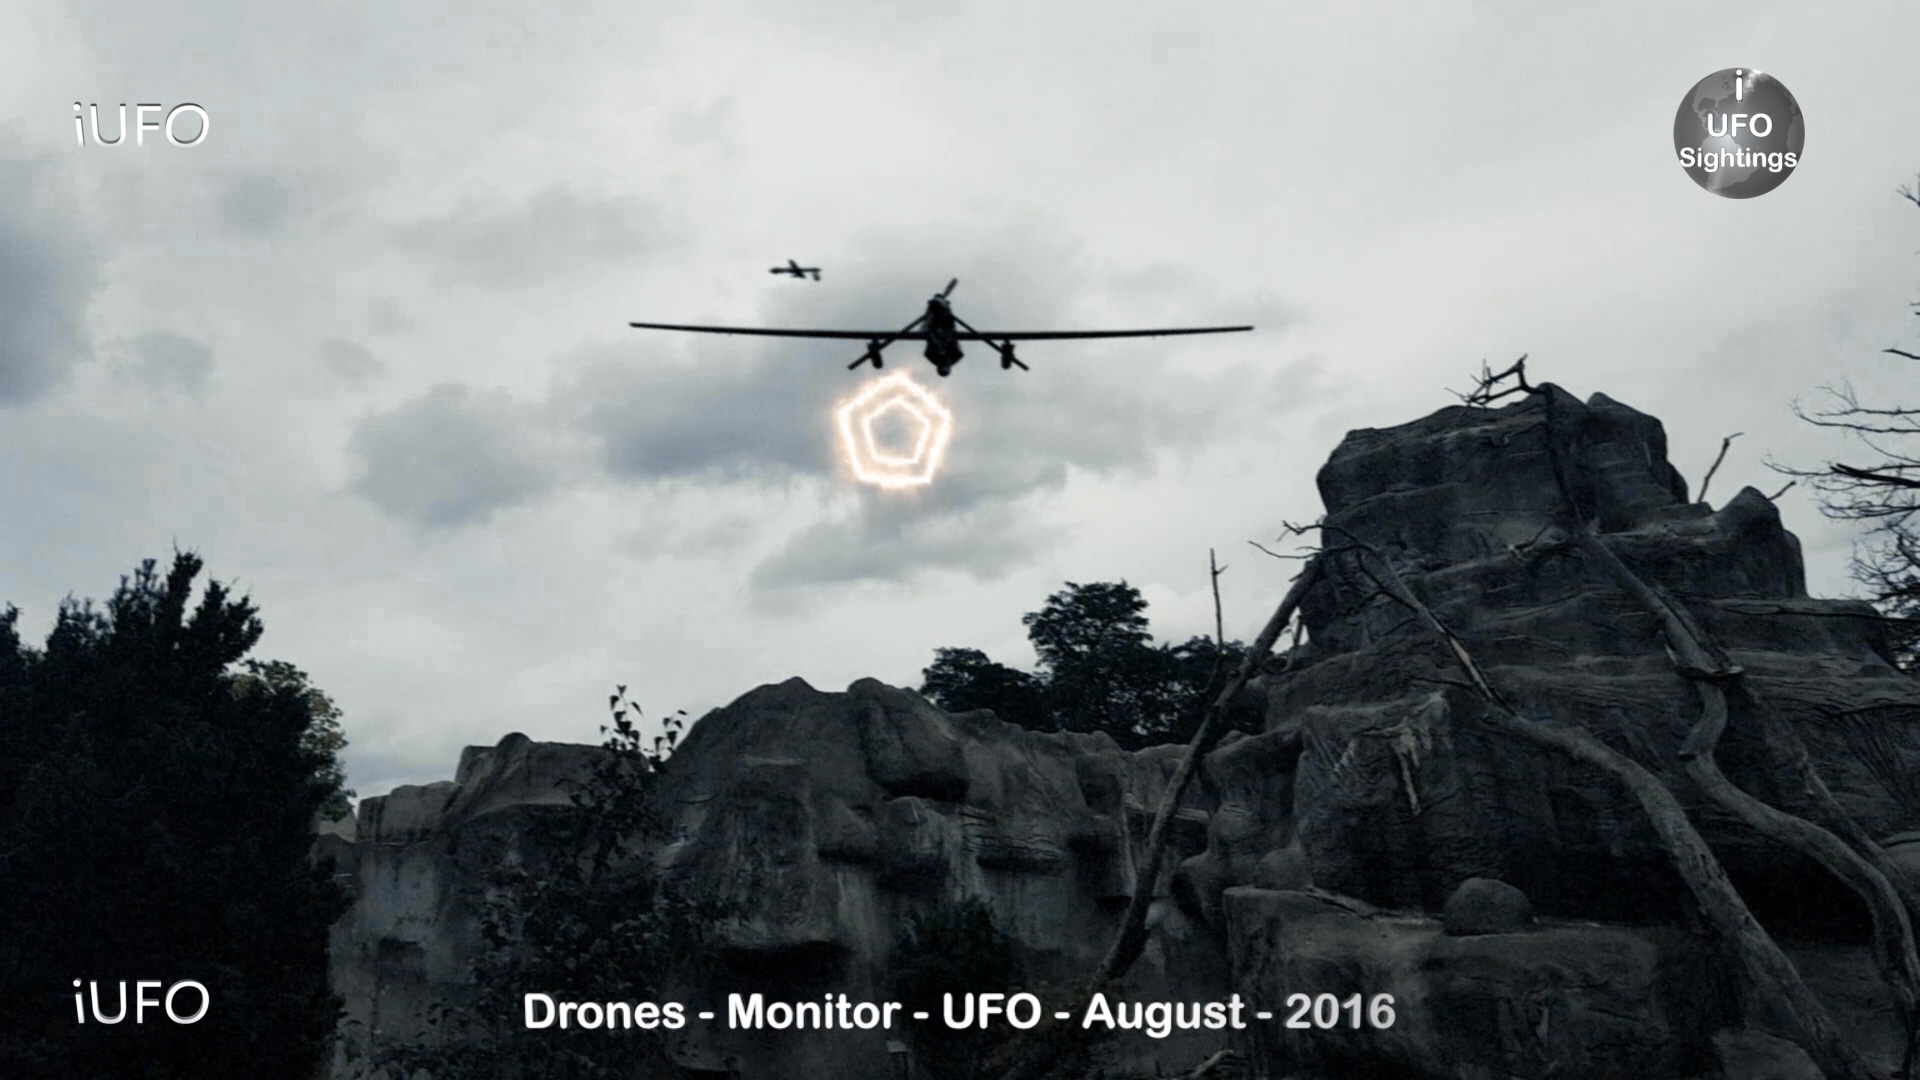 UFO Pictures | iufosightings